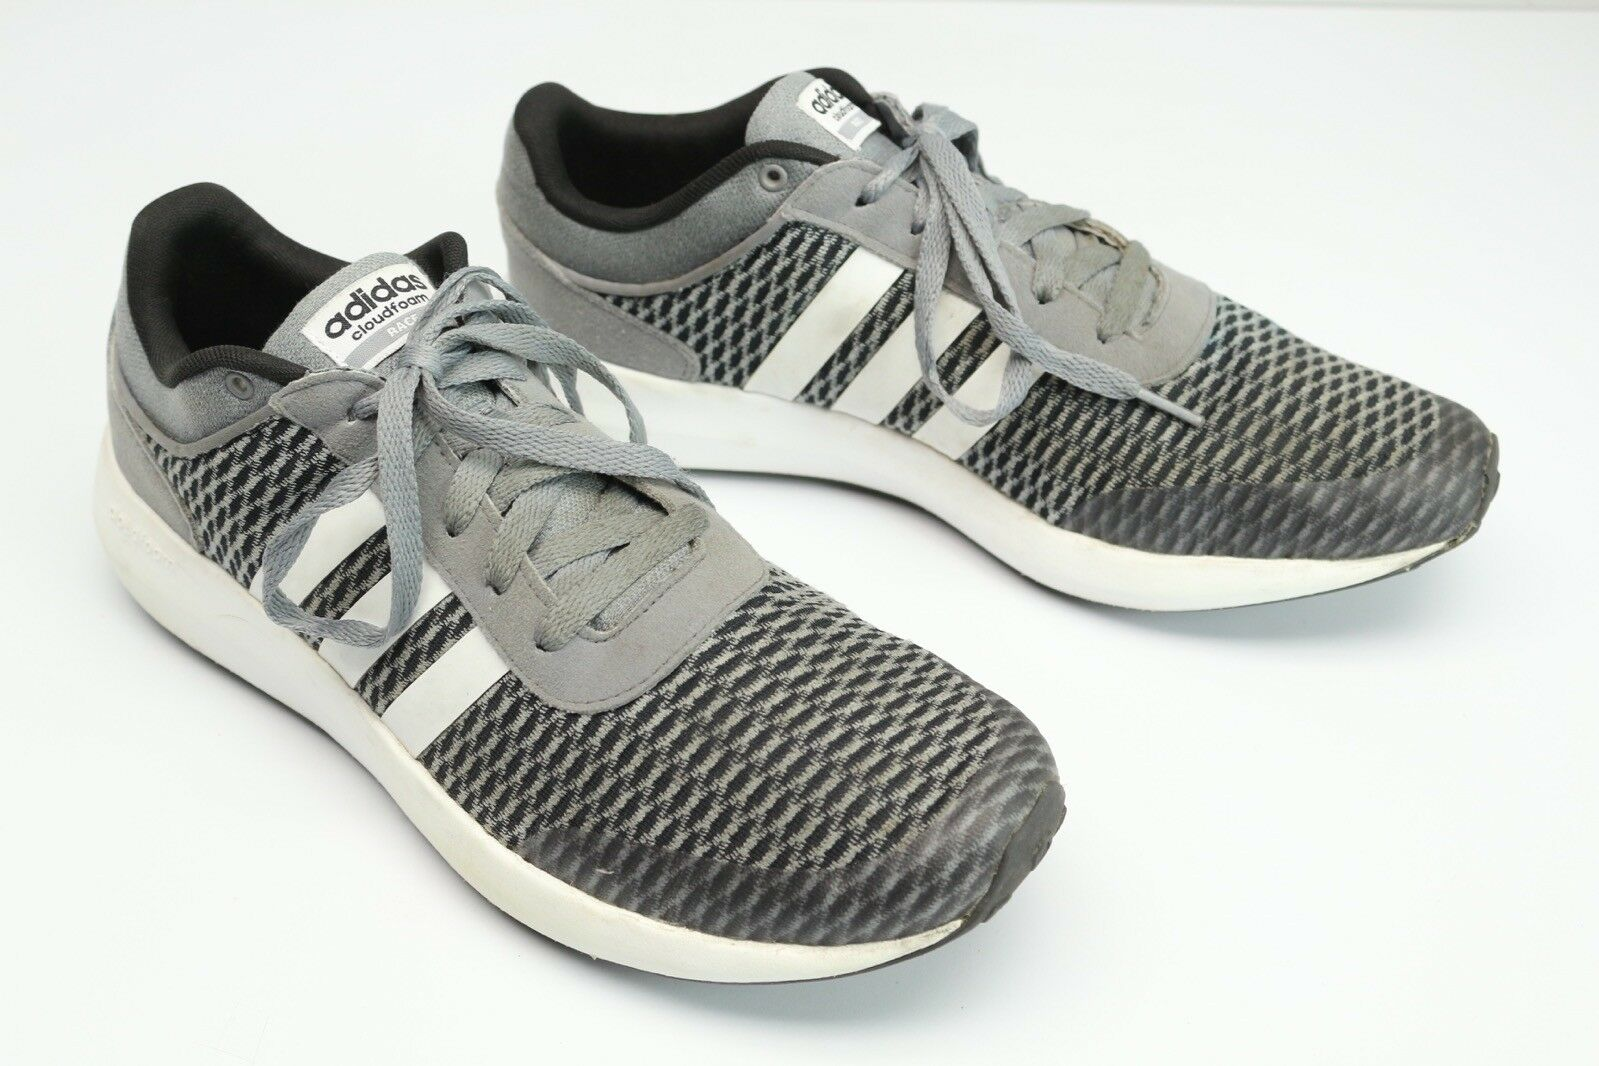 buy popular 28367 3f04f Adidas Adidas Adidas Cloudfoam Race Mens 12 Sneakers Gray Black White  Stripe Running Shoes 53702a ...